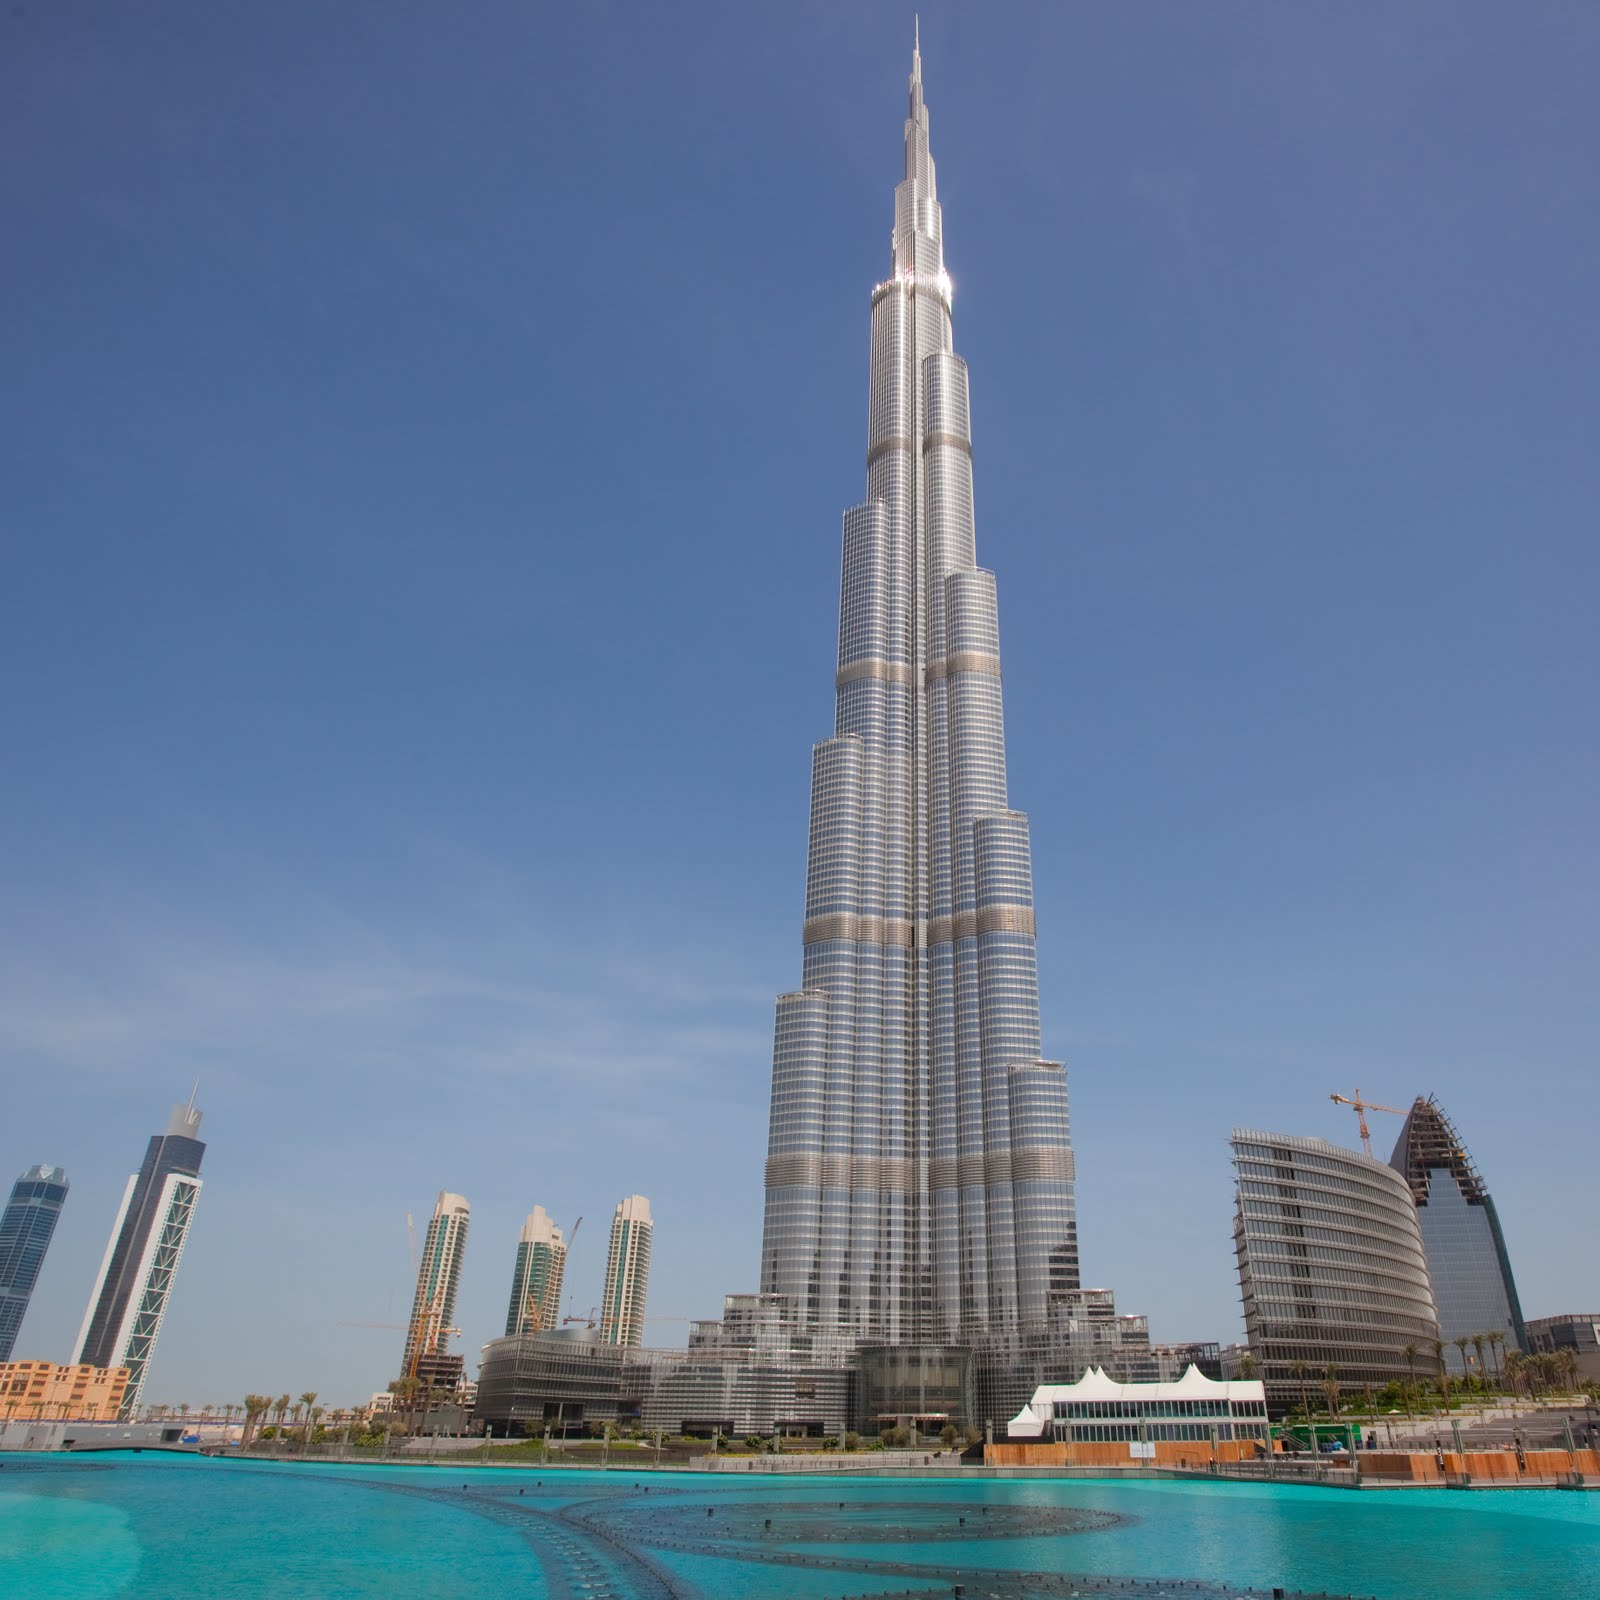 Terry's Travel and Thoughts: The Burj Khalifa in Dubai, Speaker's corner in London and Jess